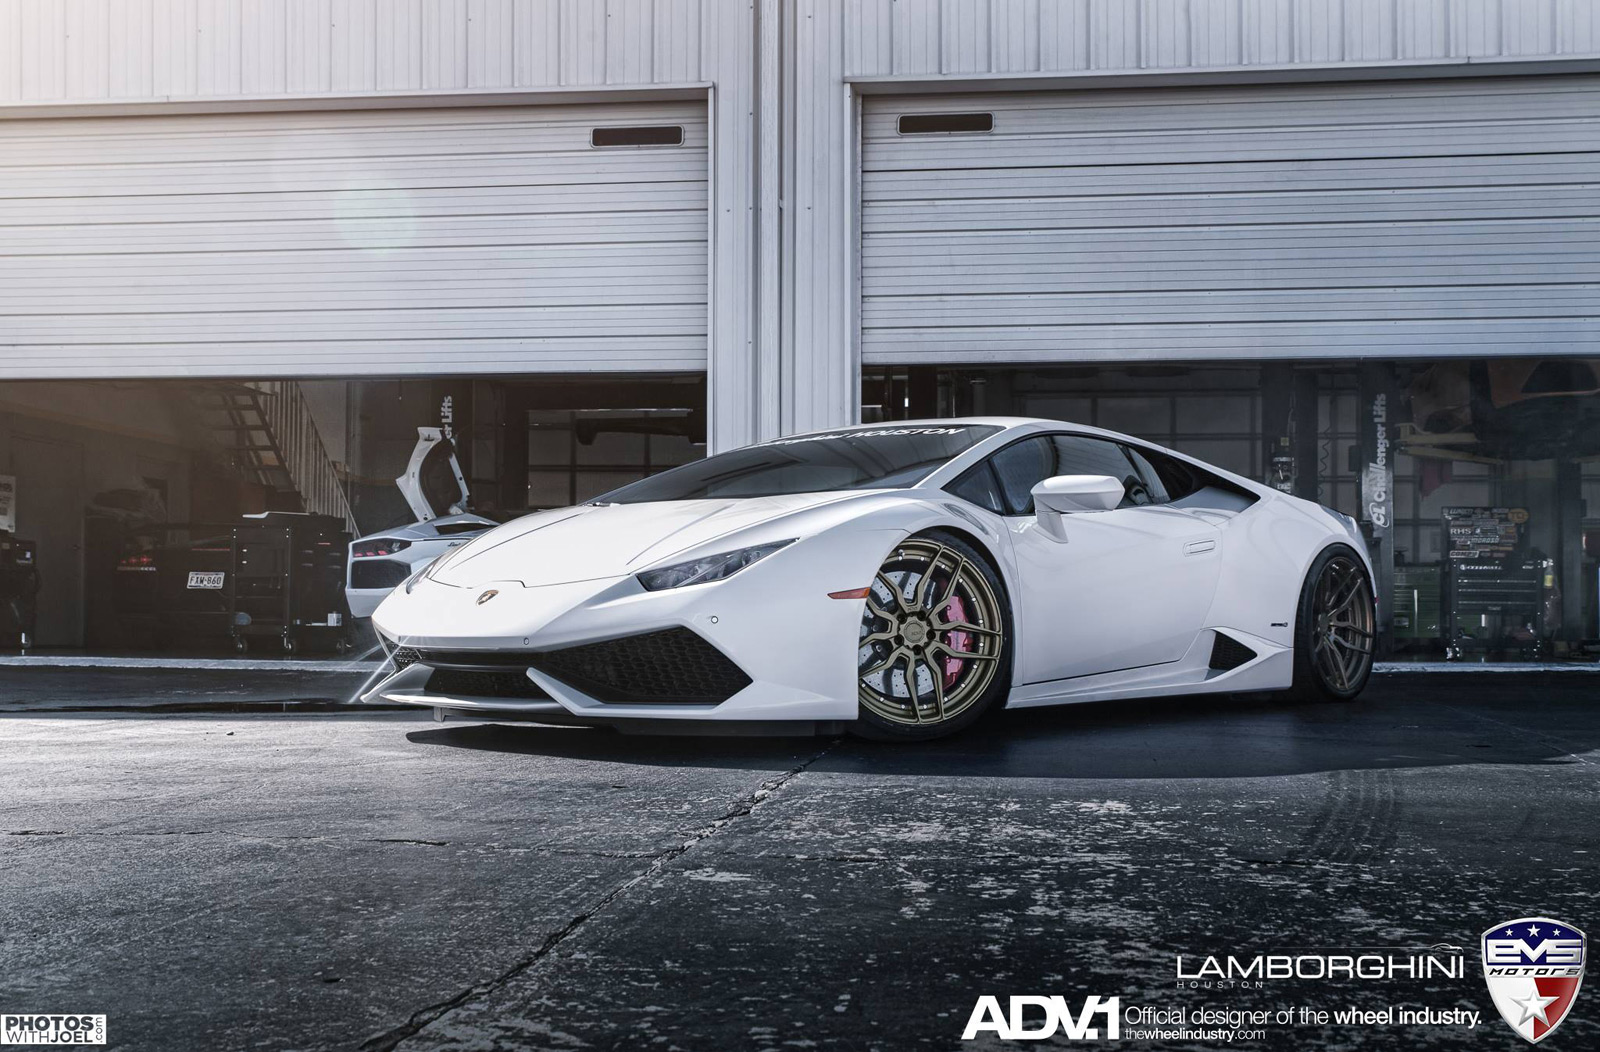 ADV.1 Lamborghini Huracan ADV.1 Wheels MPPSOCIETY Modified Cars 05